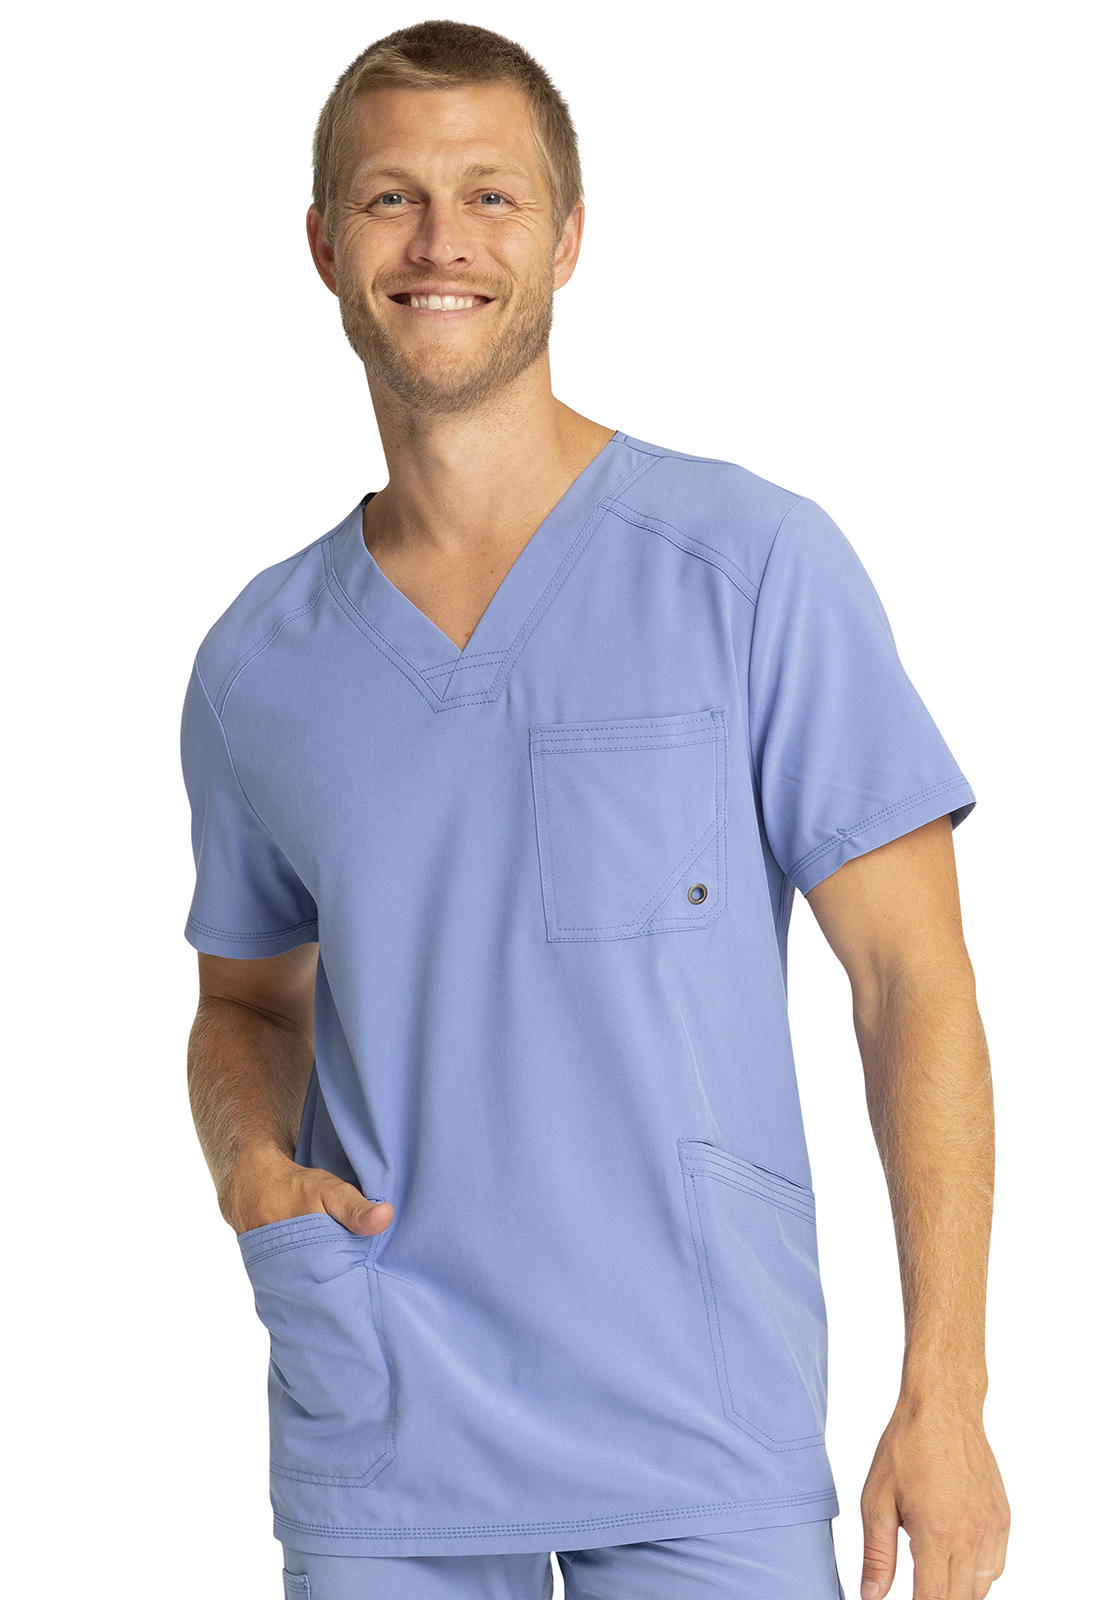 dec84bbcbb2 Infinity by Cherokee Men's V-Neck Top CK900A-CIPS from Love Your Scrubs